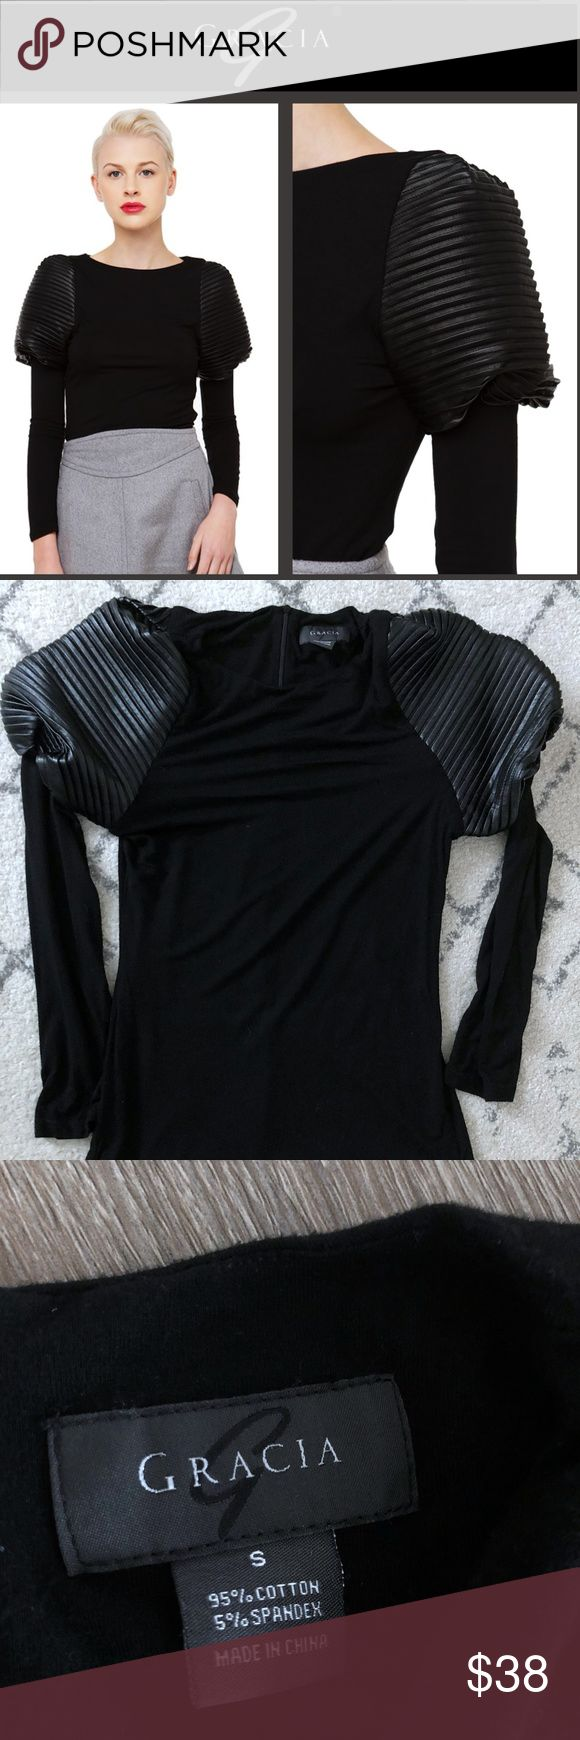 GRACIA Couture Black Widow Leather Shoulder Top GRACIA Couture Black Widow Leather Shoulder Top   The Gracia Black Widow Leather Shoulder Top features a scoop neckline, puffed & pleated pleather shoulders, long sleeves, and an invisible back zipper closure. Unlined. Rock this textured blouse with leather bottoms, pointed ankle boots, & a bold lip.   Condition: Gently used; worn once; excellent condition Color: Black Size: Women's Small Measurements:  Height (from shoulder to bottom hem)…